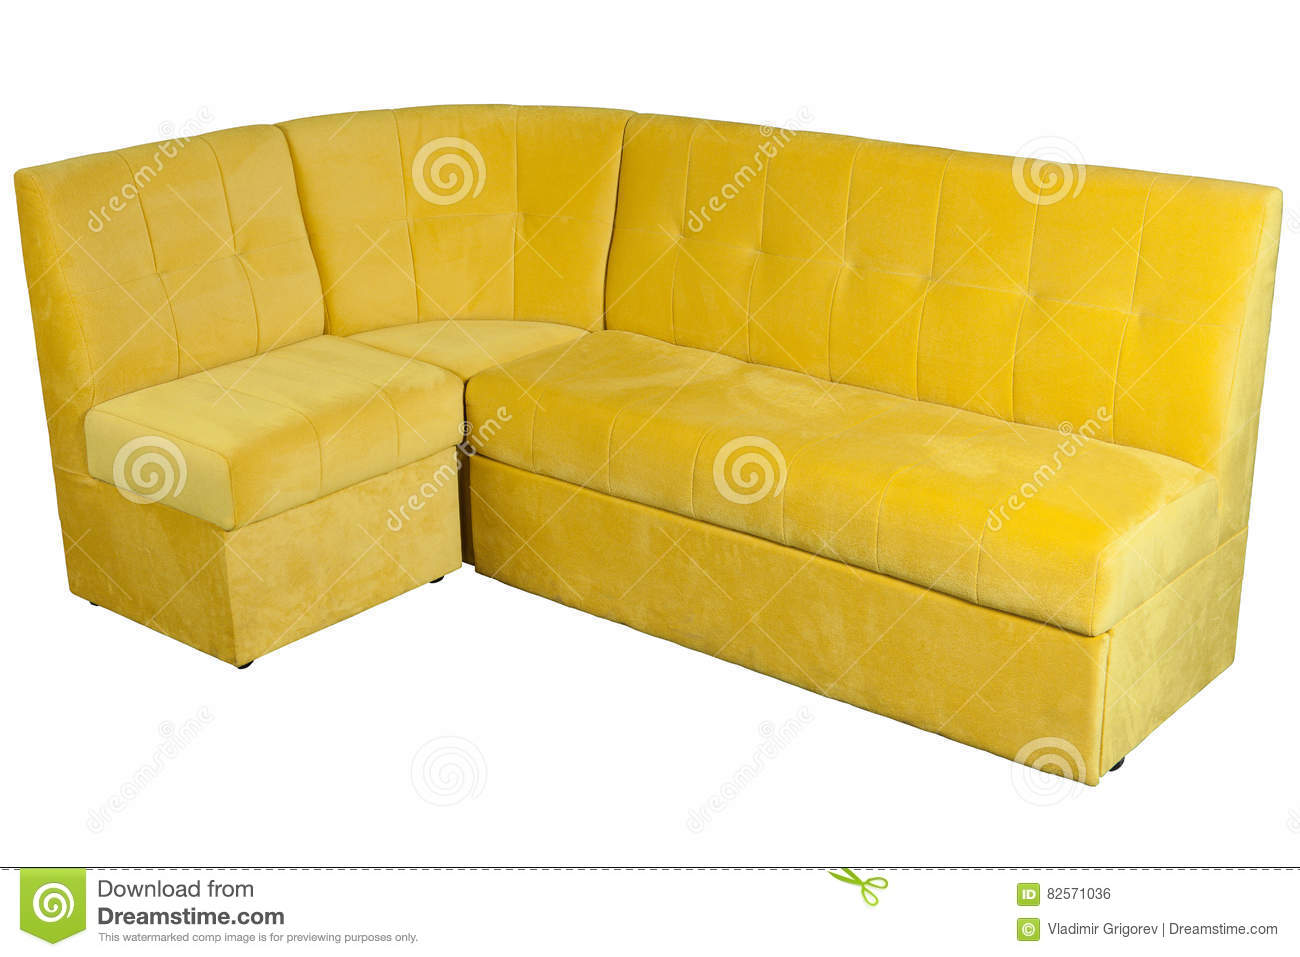 Download Yellow Microfiber Sofa For Diner Room With Storage Space. Stock  Photo   Image Of